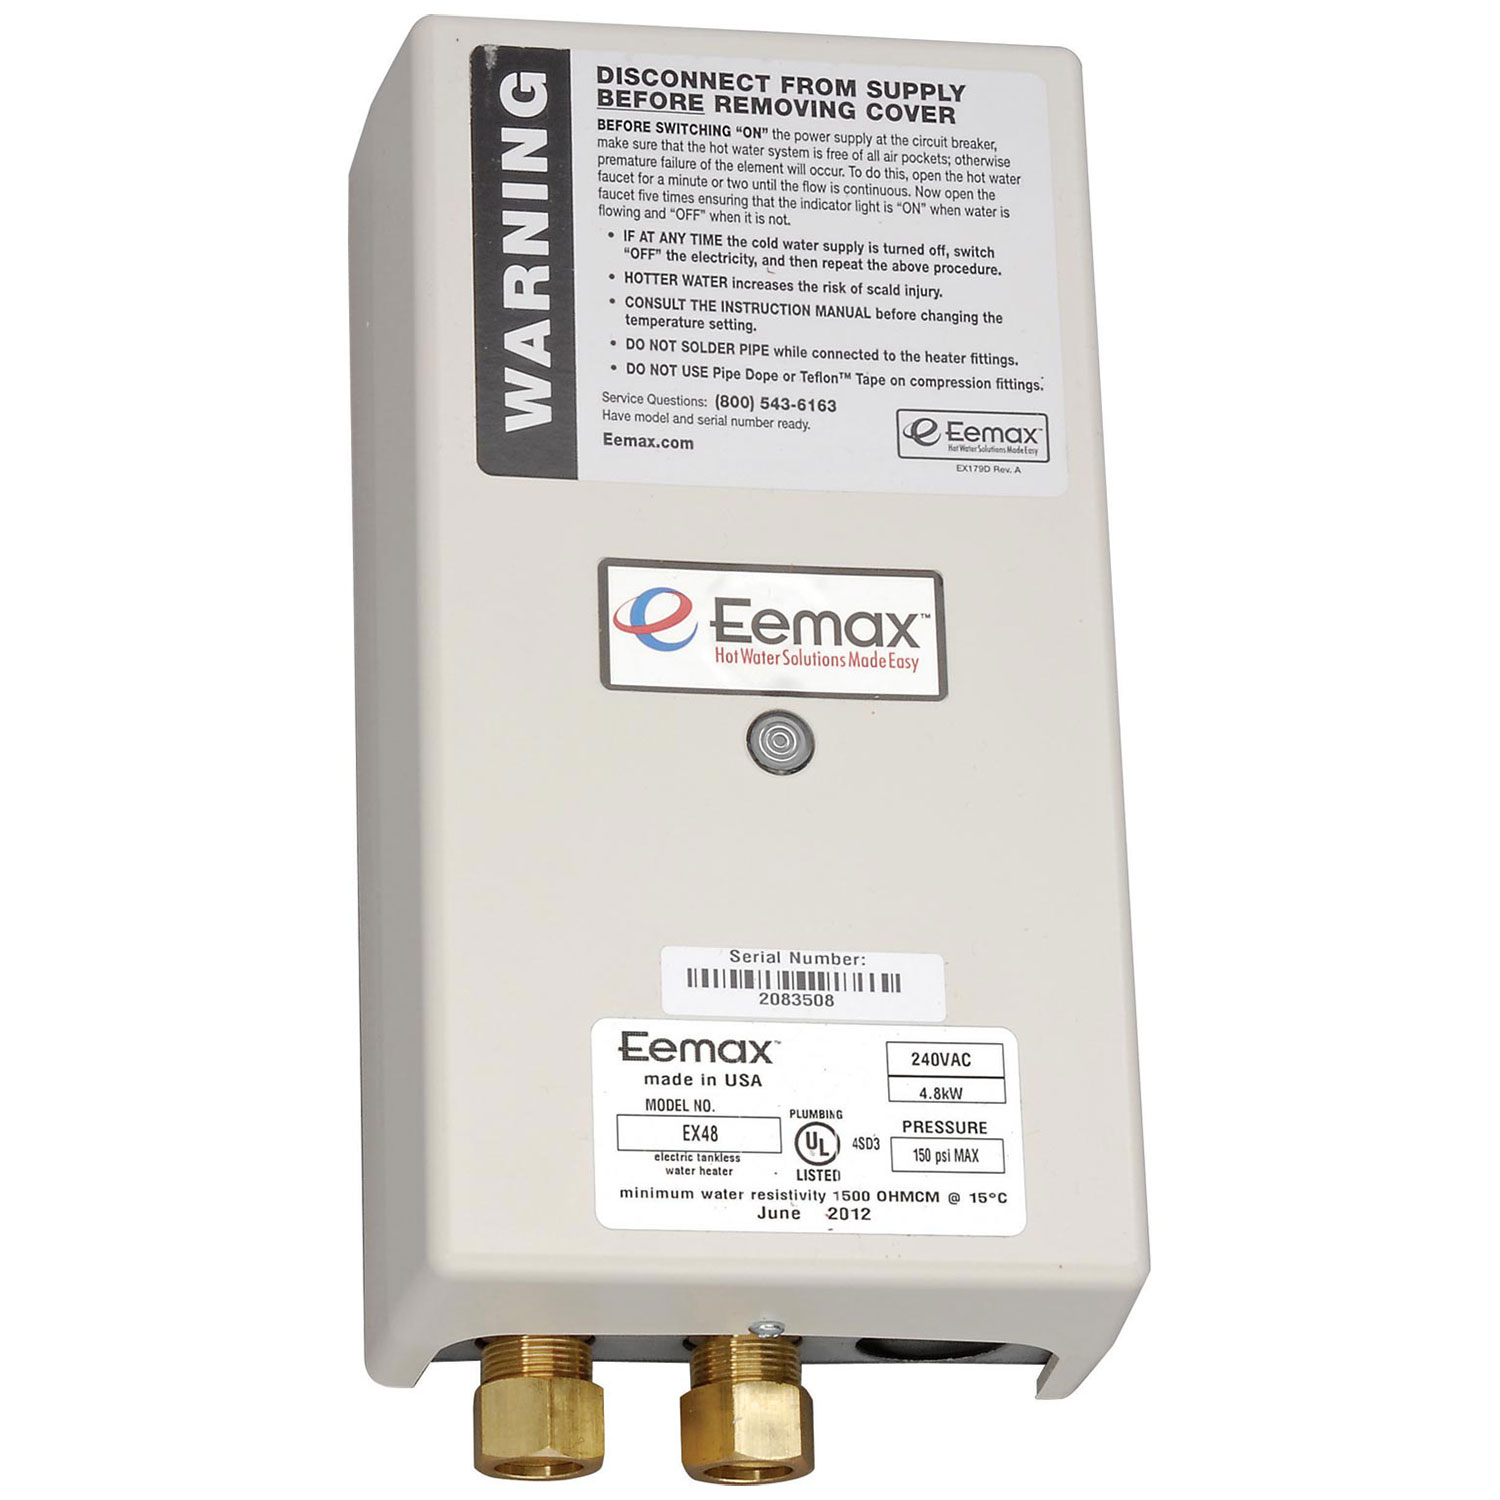 eemax electric tankless water heater, flo-controlled point of use